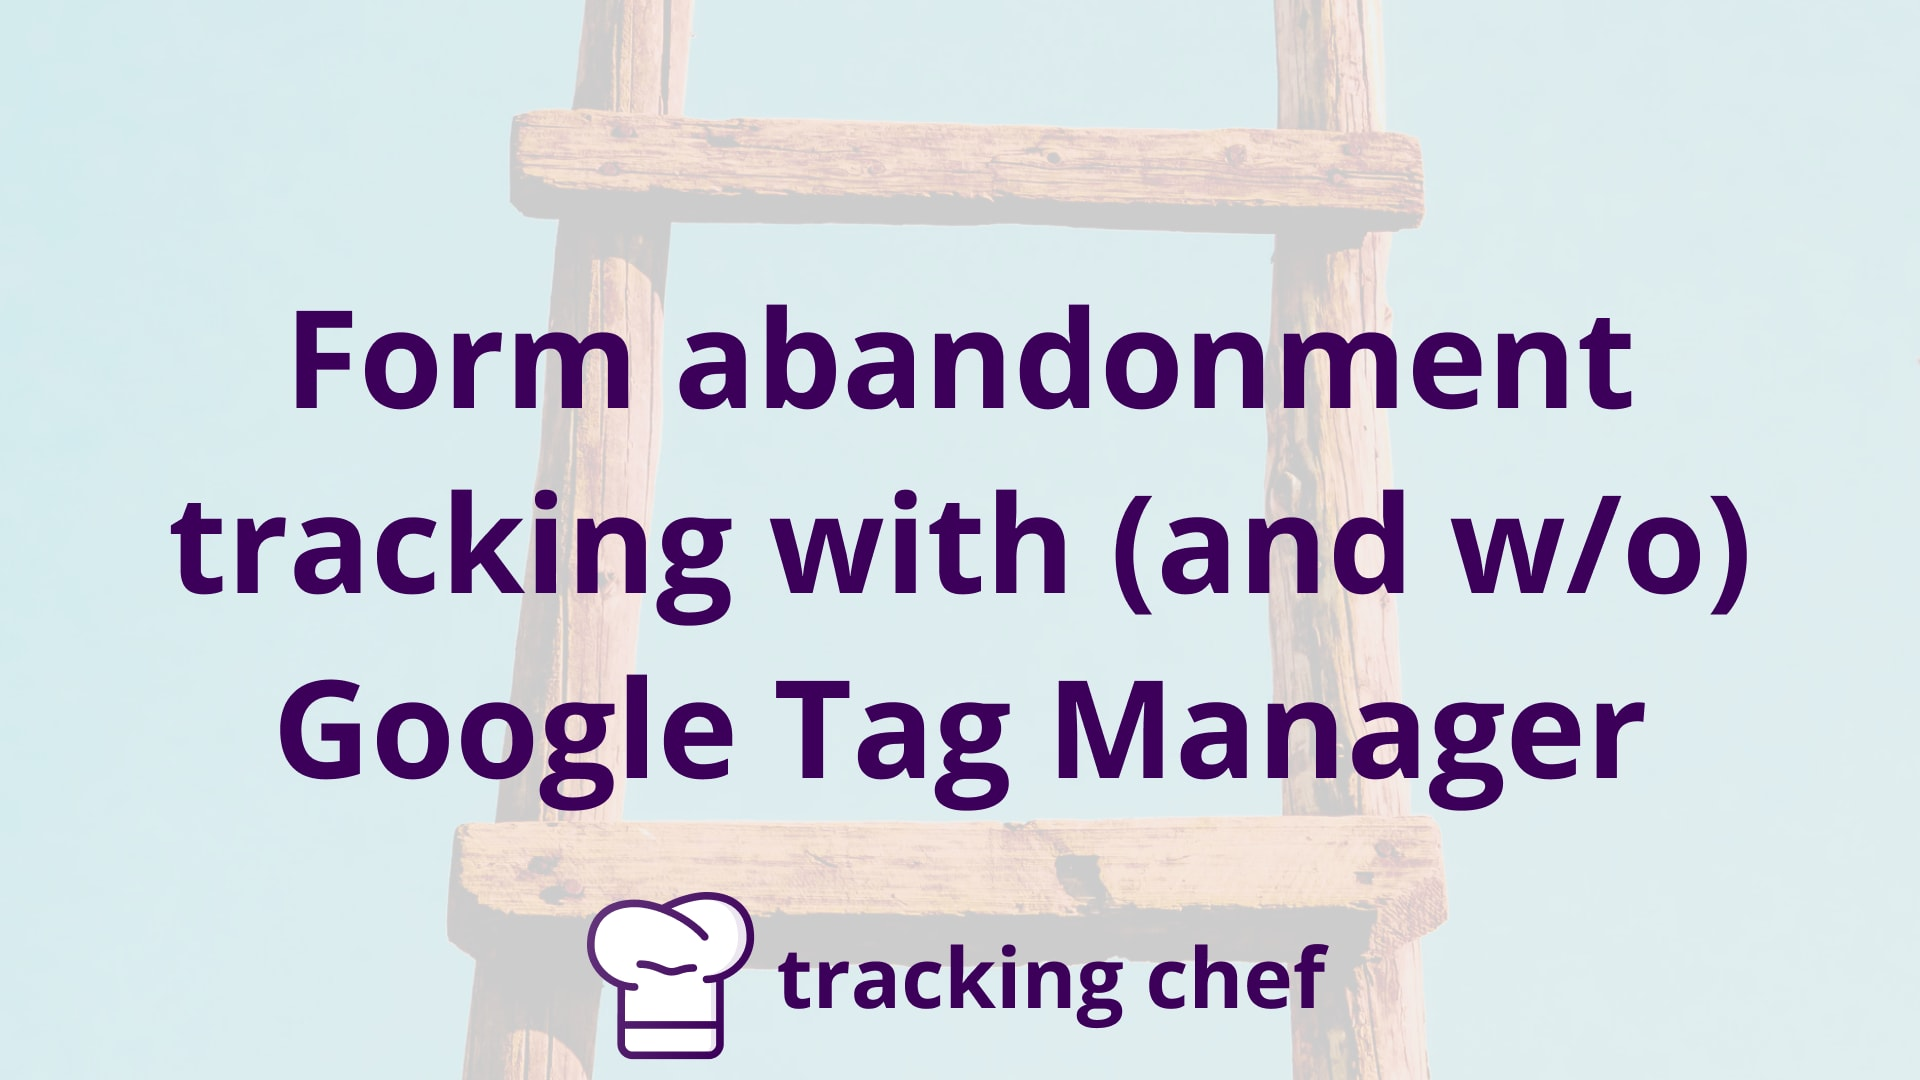 Form abandonment tracking with (and w/o) Google Tag Manager